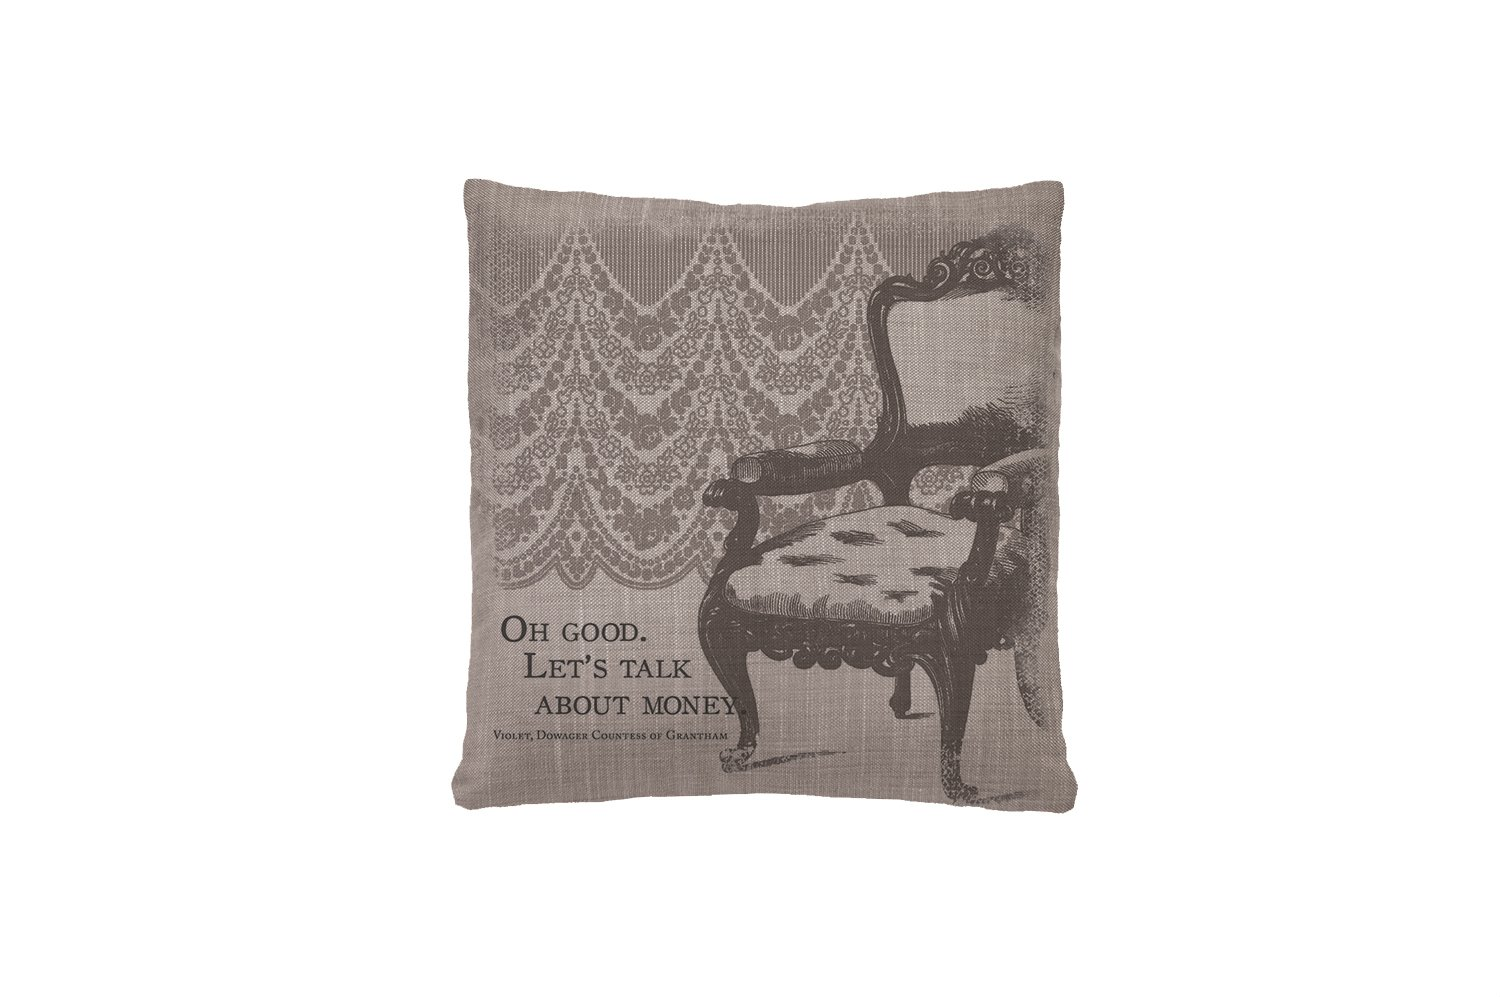 (Money) - Heritage Lace Downton Abbey Iconic Talk About Money Pillow, 46cm by 46cm, Grey お金(Money)  B00J7ZYQOU